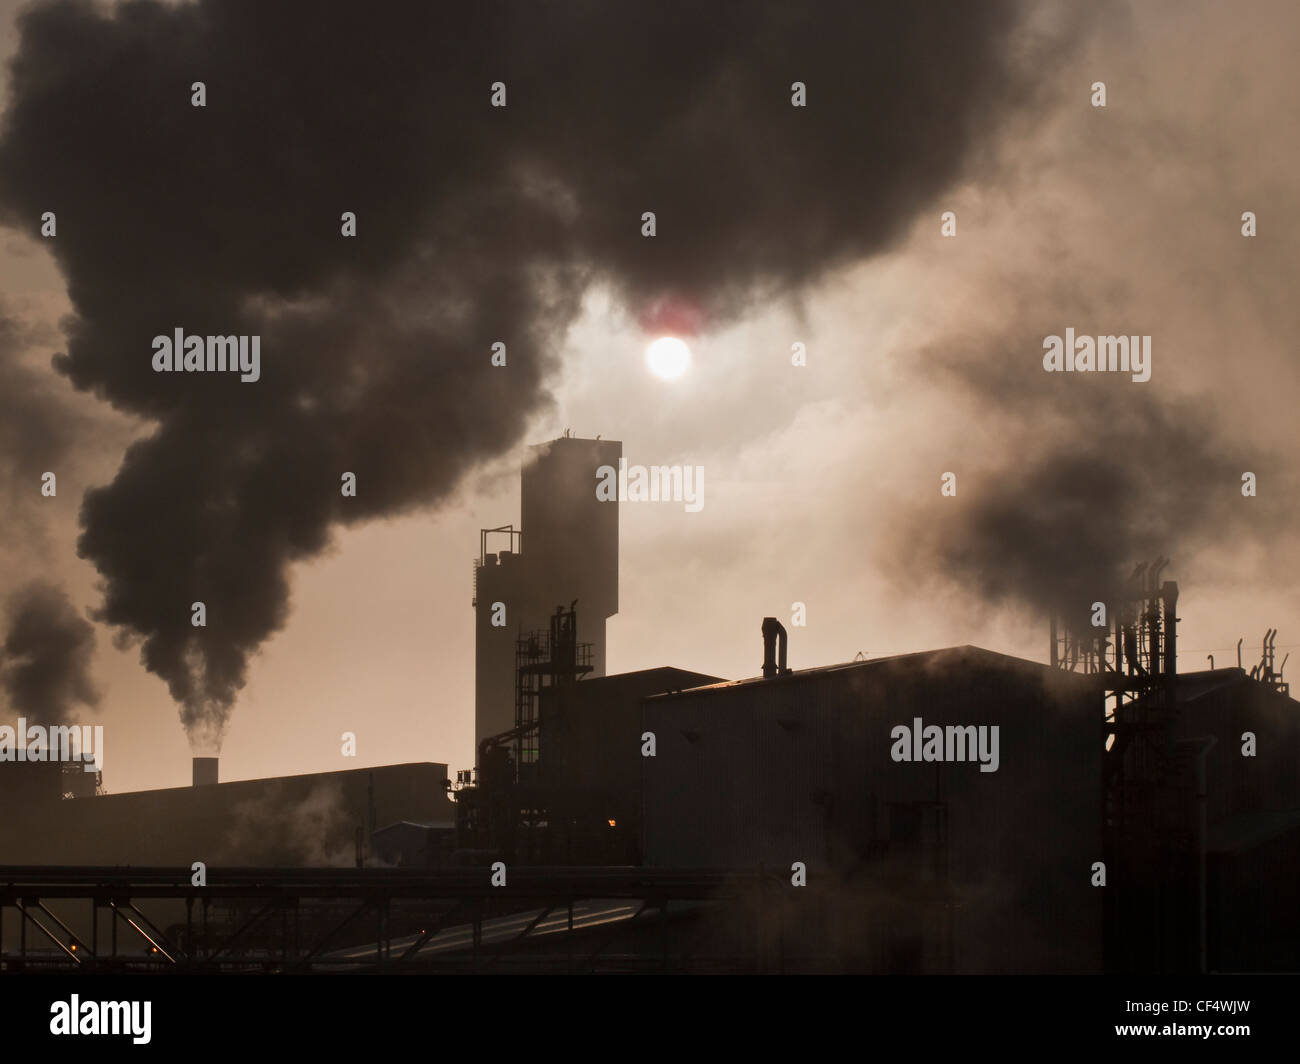 Smoke billowing out from chimneys at the Billingham chemical complex. - Stock Image